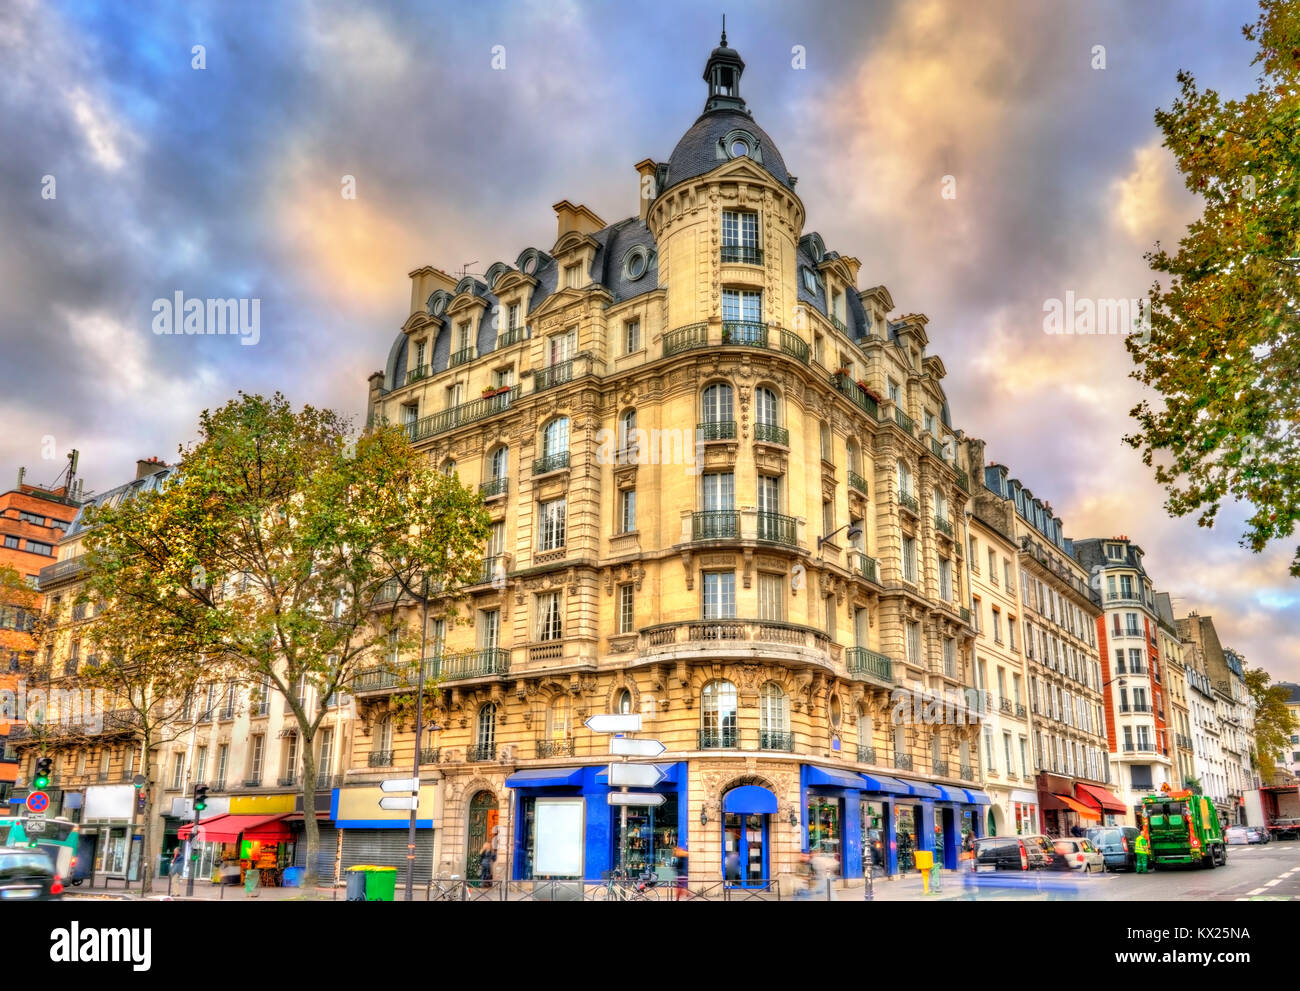 Typical buildings in Paris, France - Stock Image